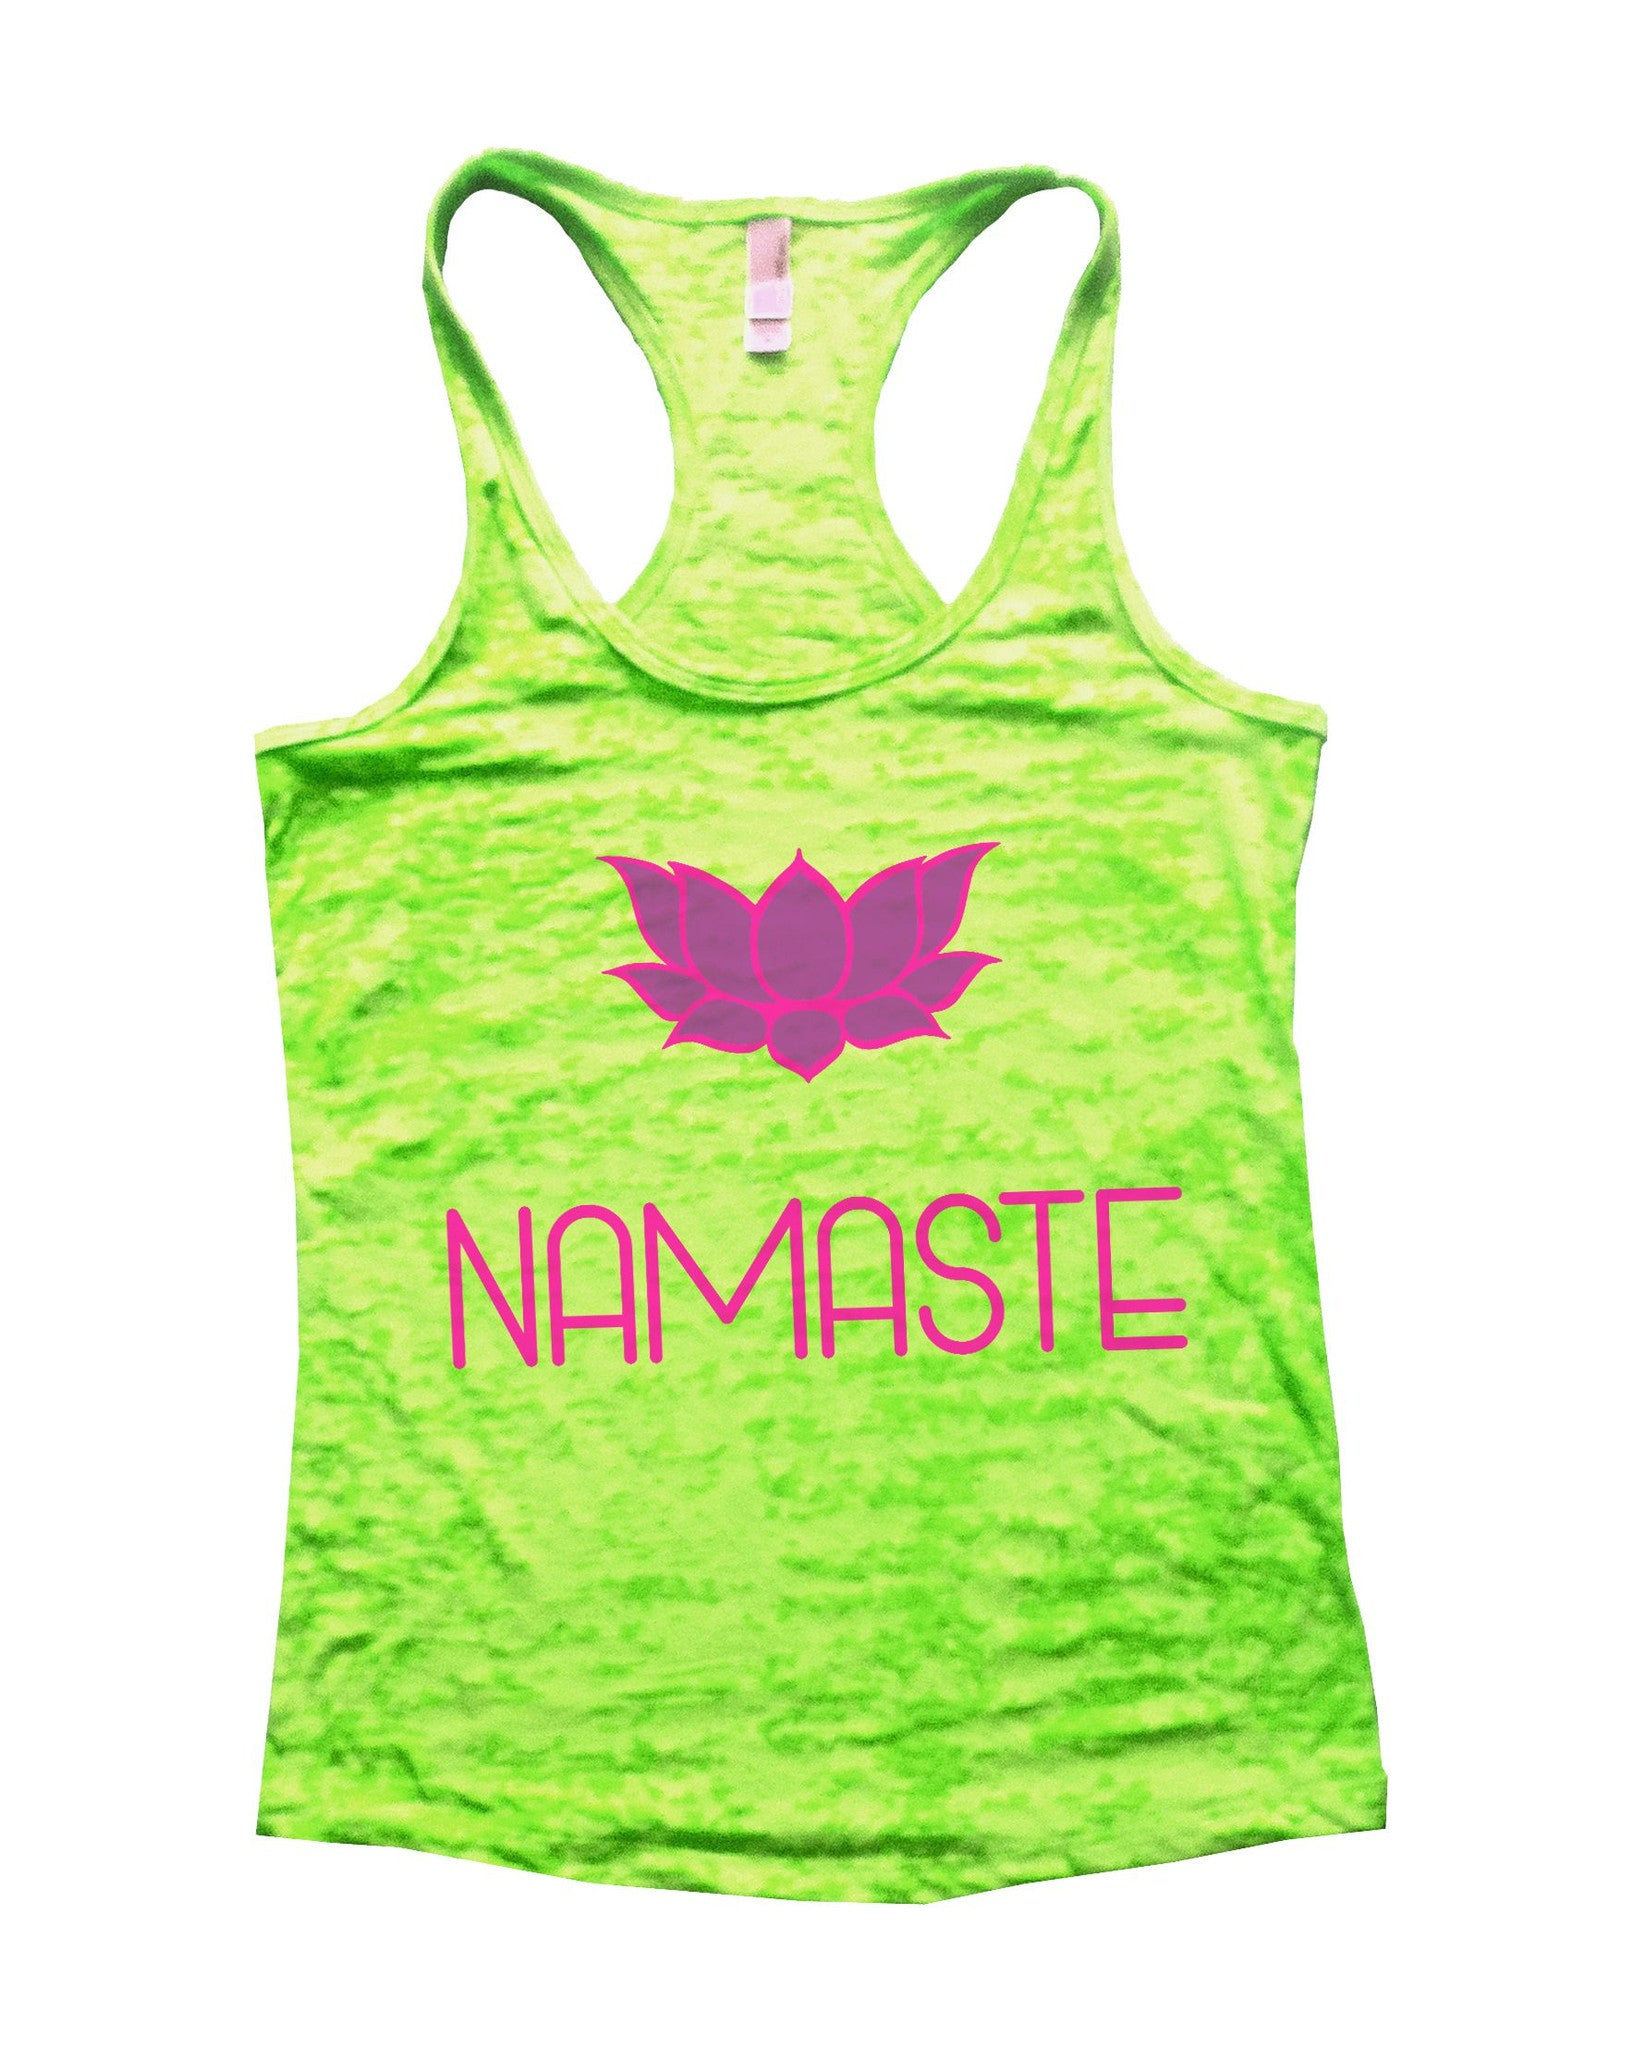 Namaste Burnout Tank Top By BurnoutTankTops.com - 631 - Funny Shirts Tank Tops Burnouts and Triblends  - 3